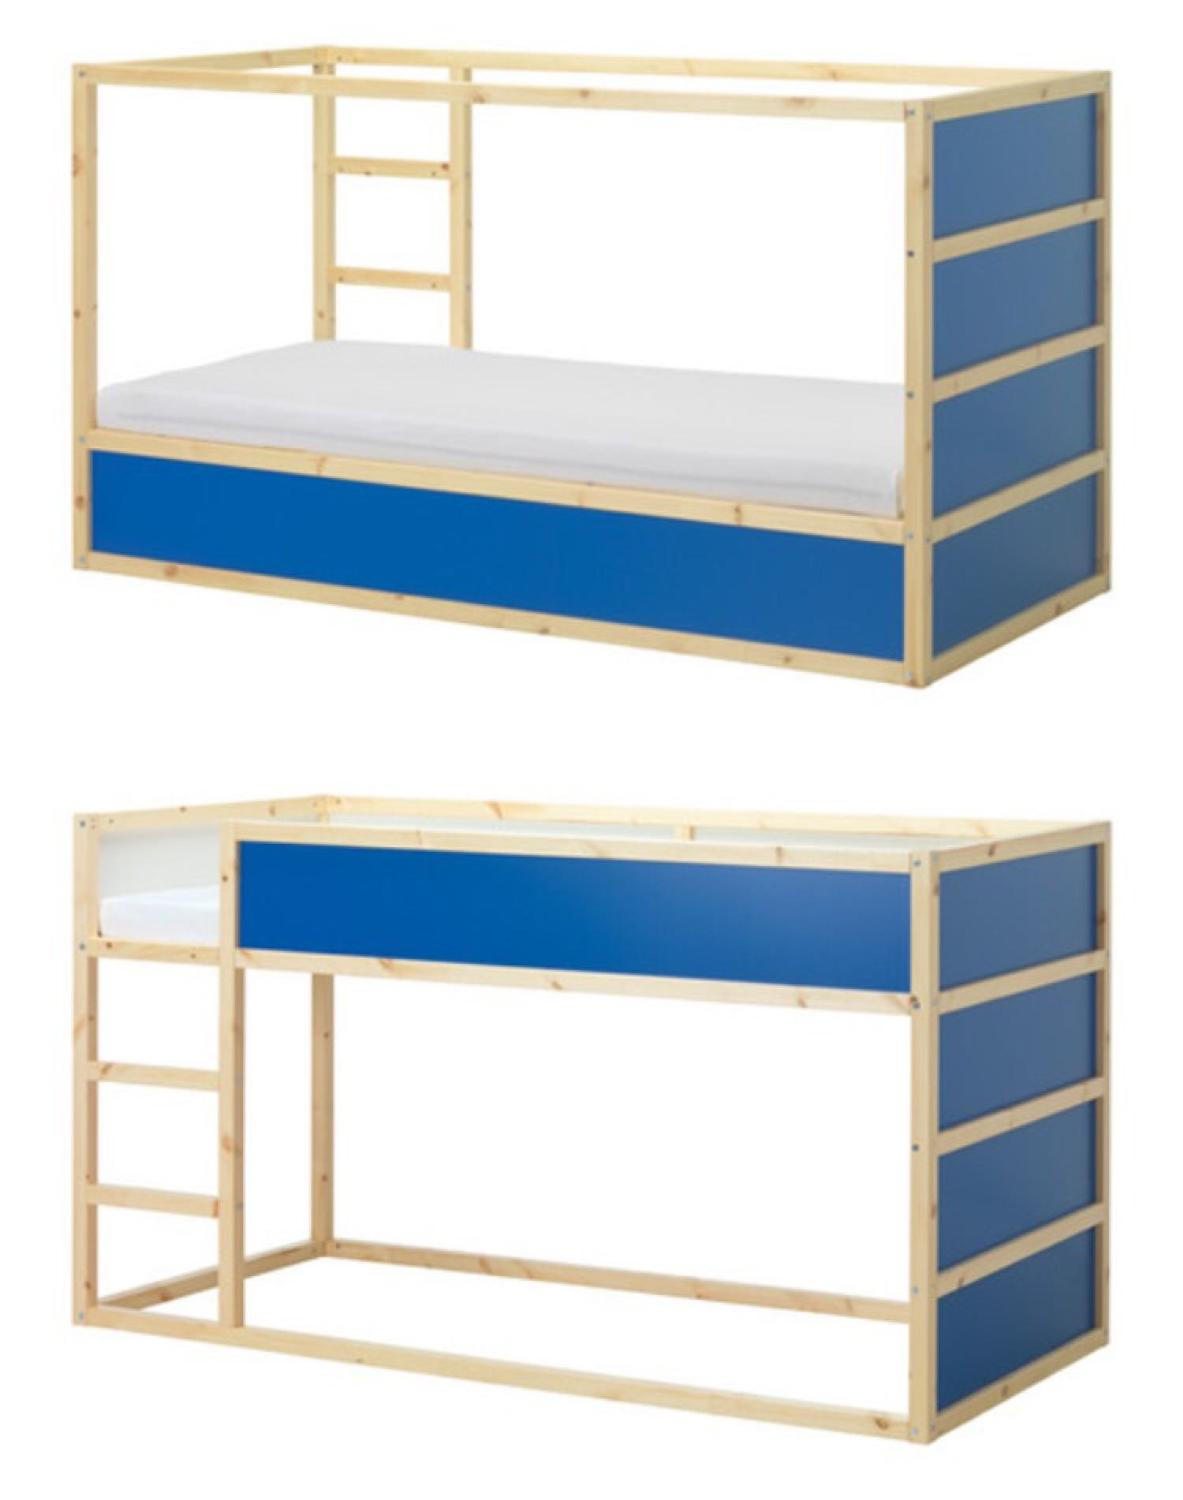 Find More Ikea Kura Reversible Twin Bed Tent For Sale At Up To 90 Off